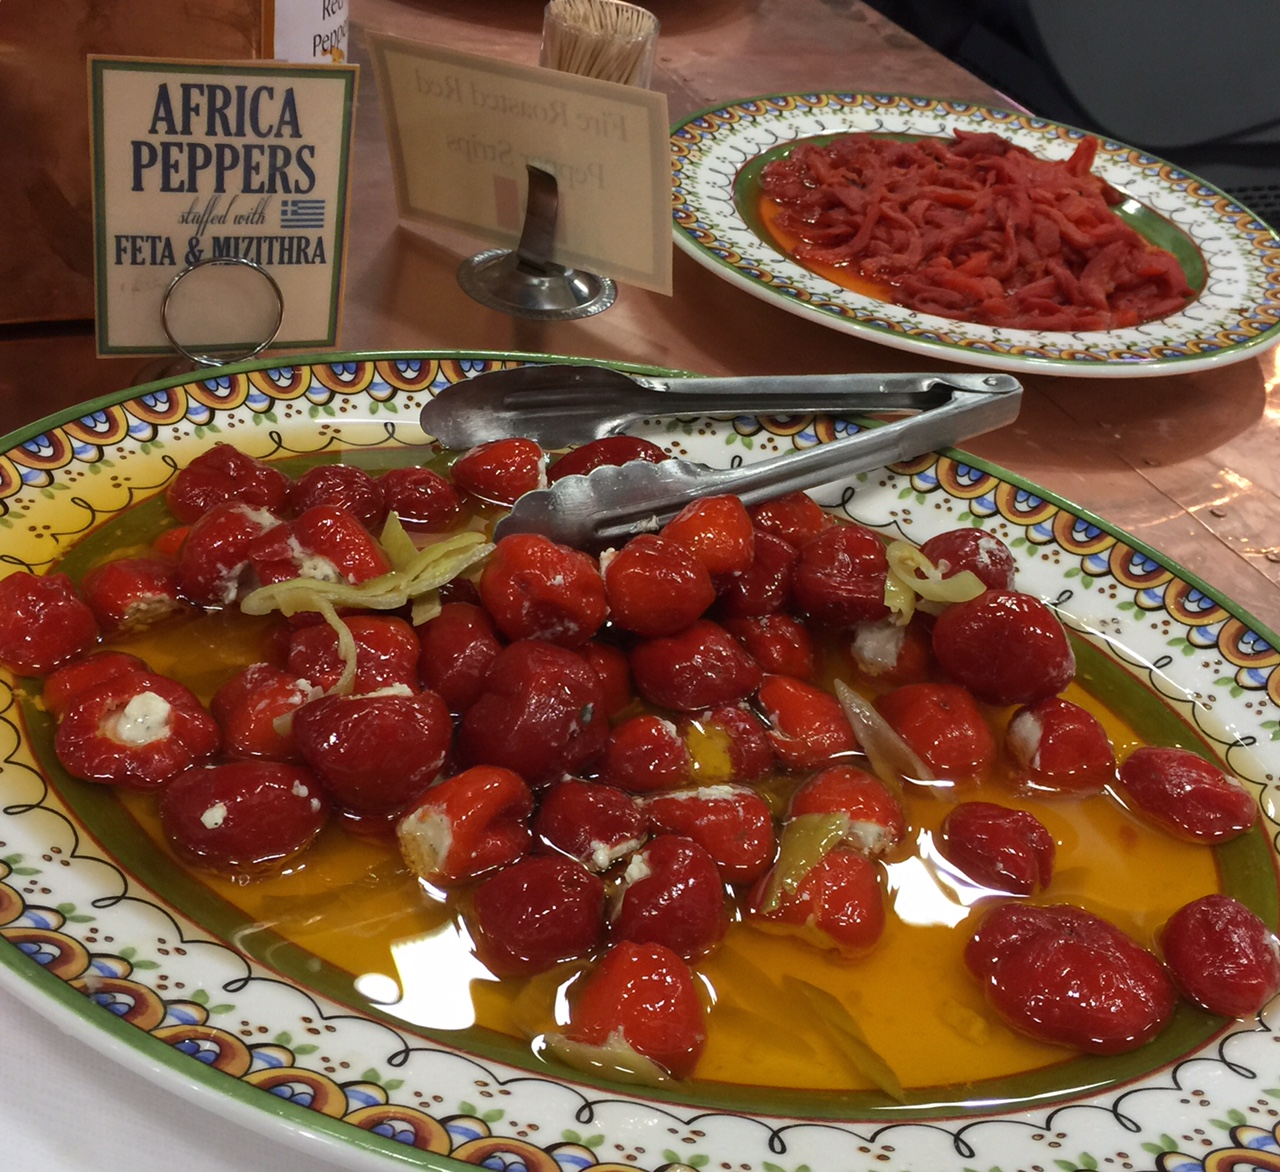 Africa Peppers with Feta Cheese